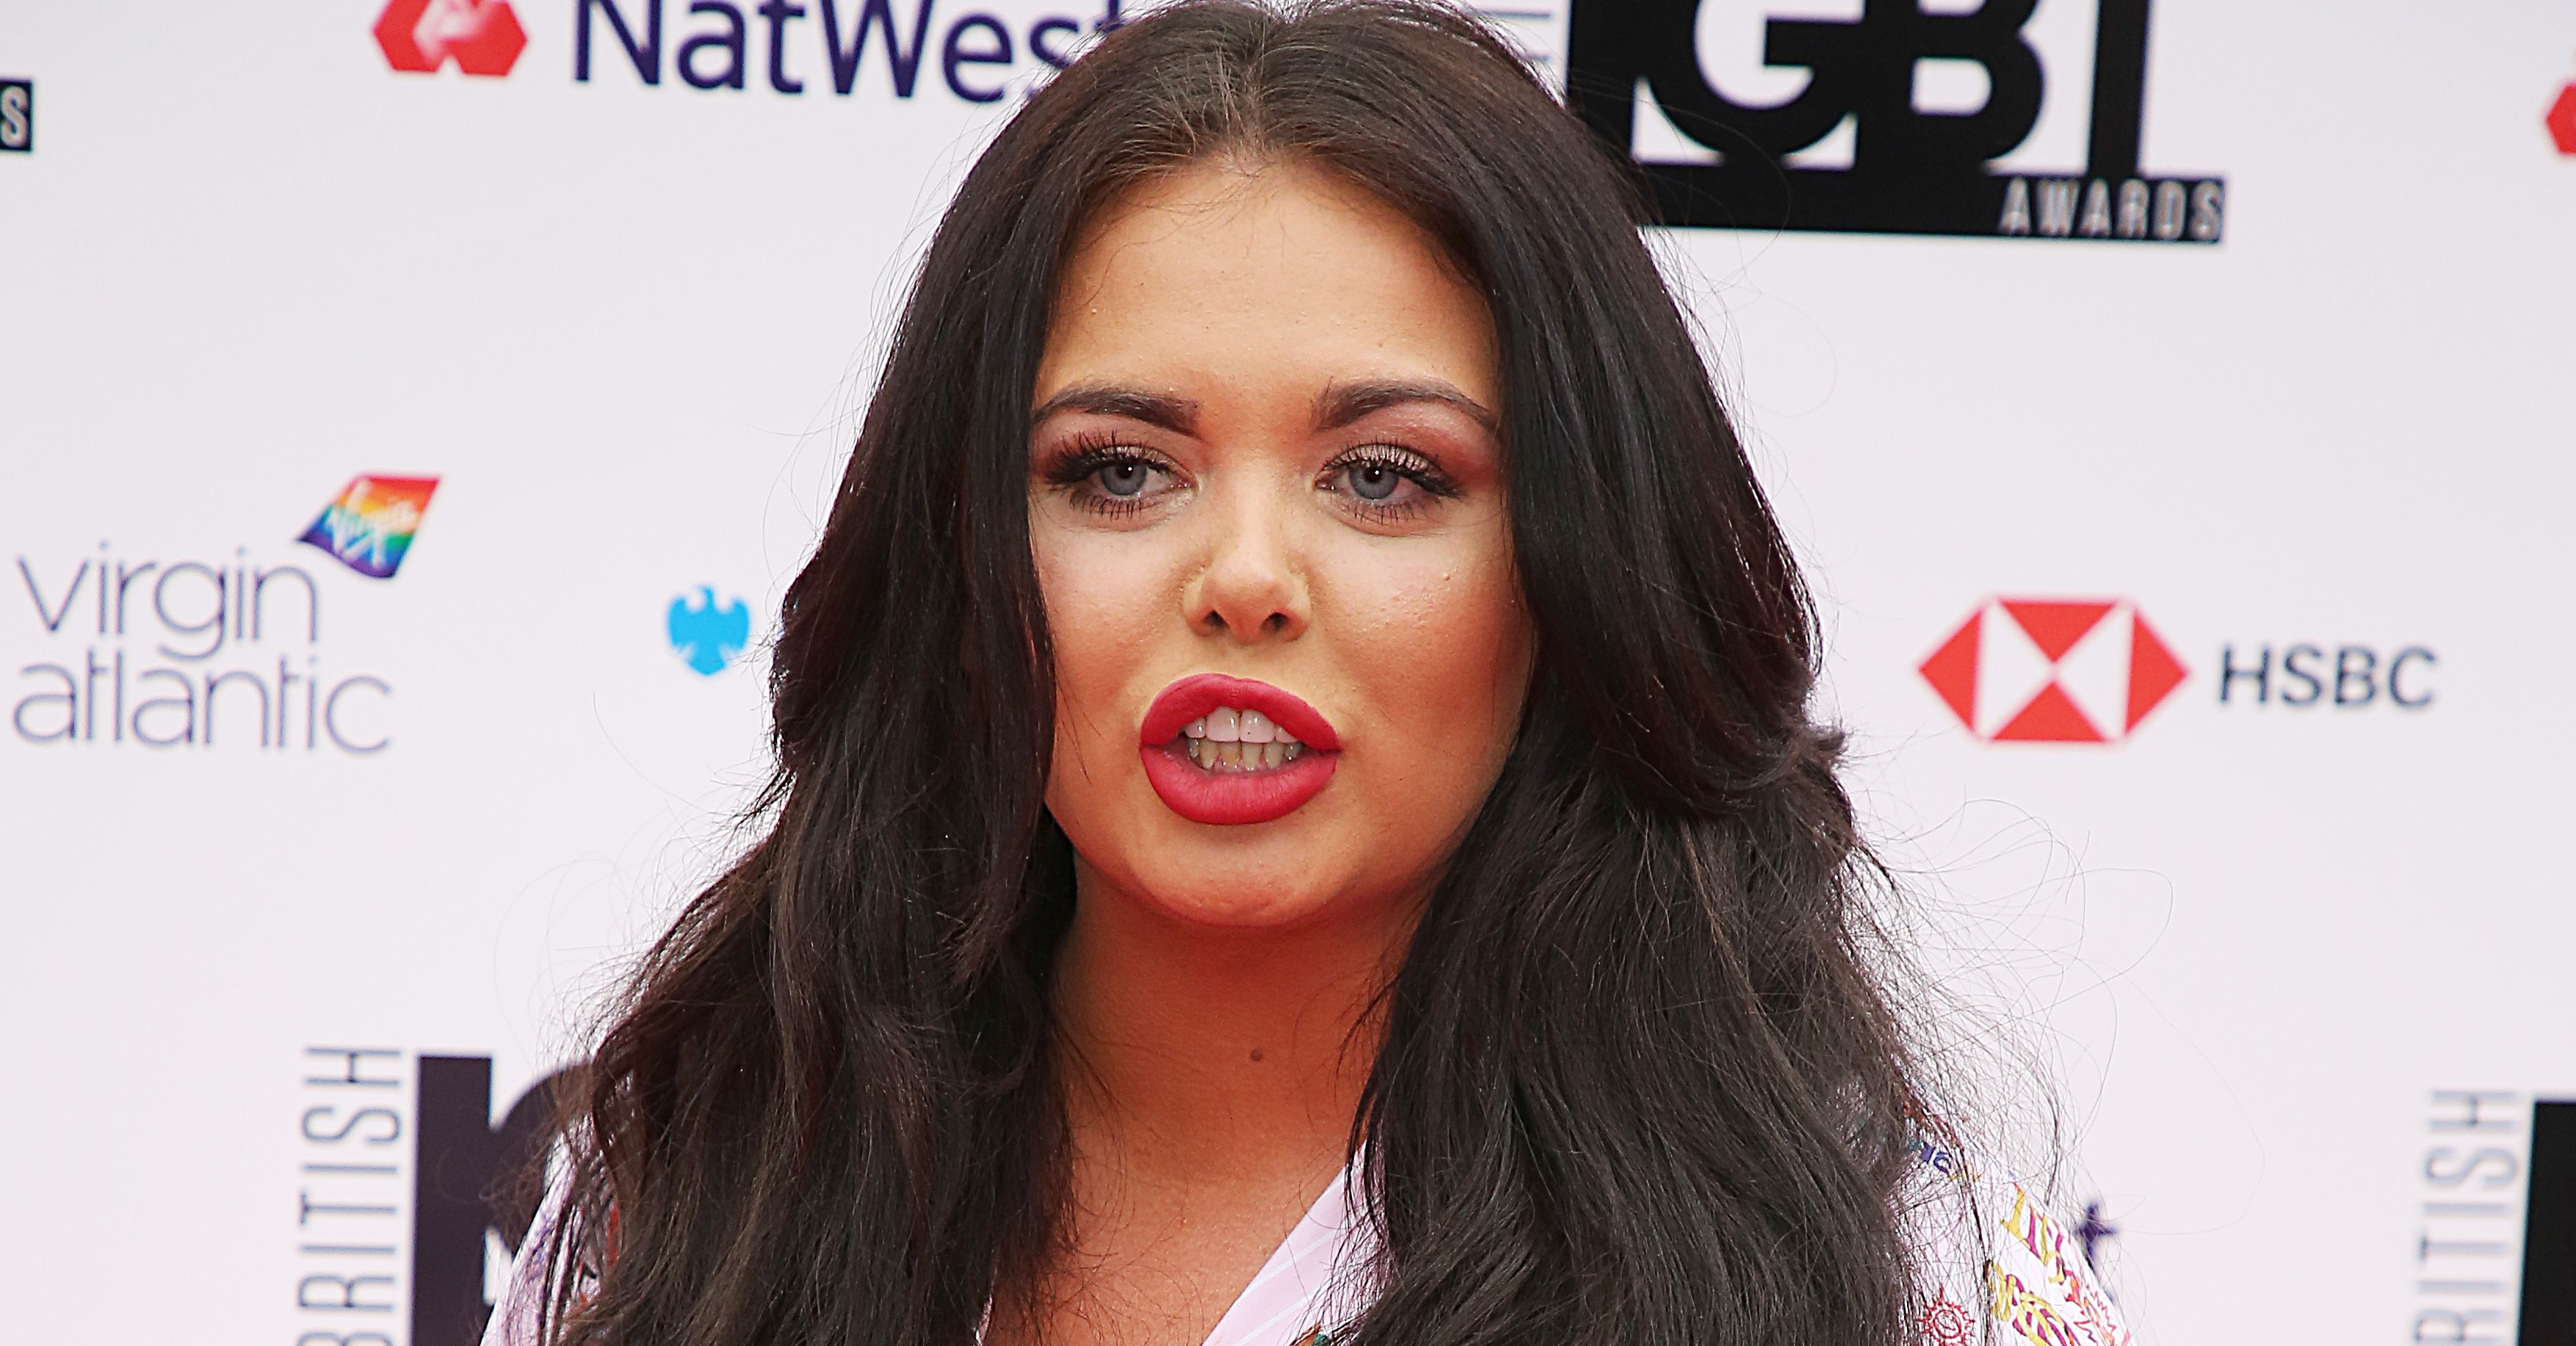 Scarlett Moffatt 'shouts at woman in furious bust-up at her birthday party'